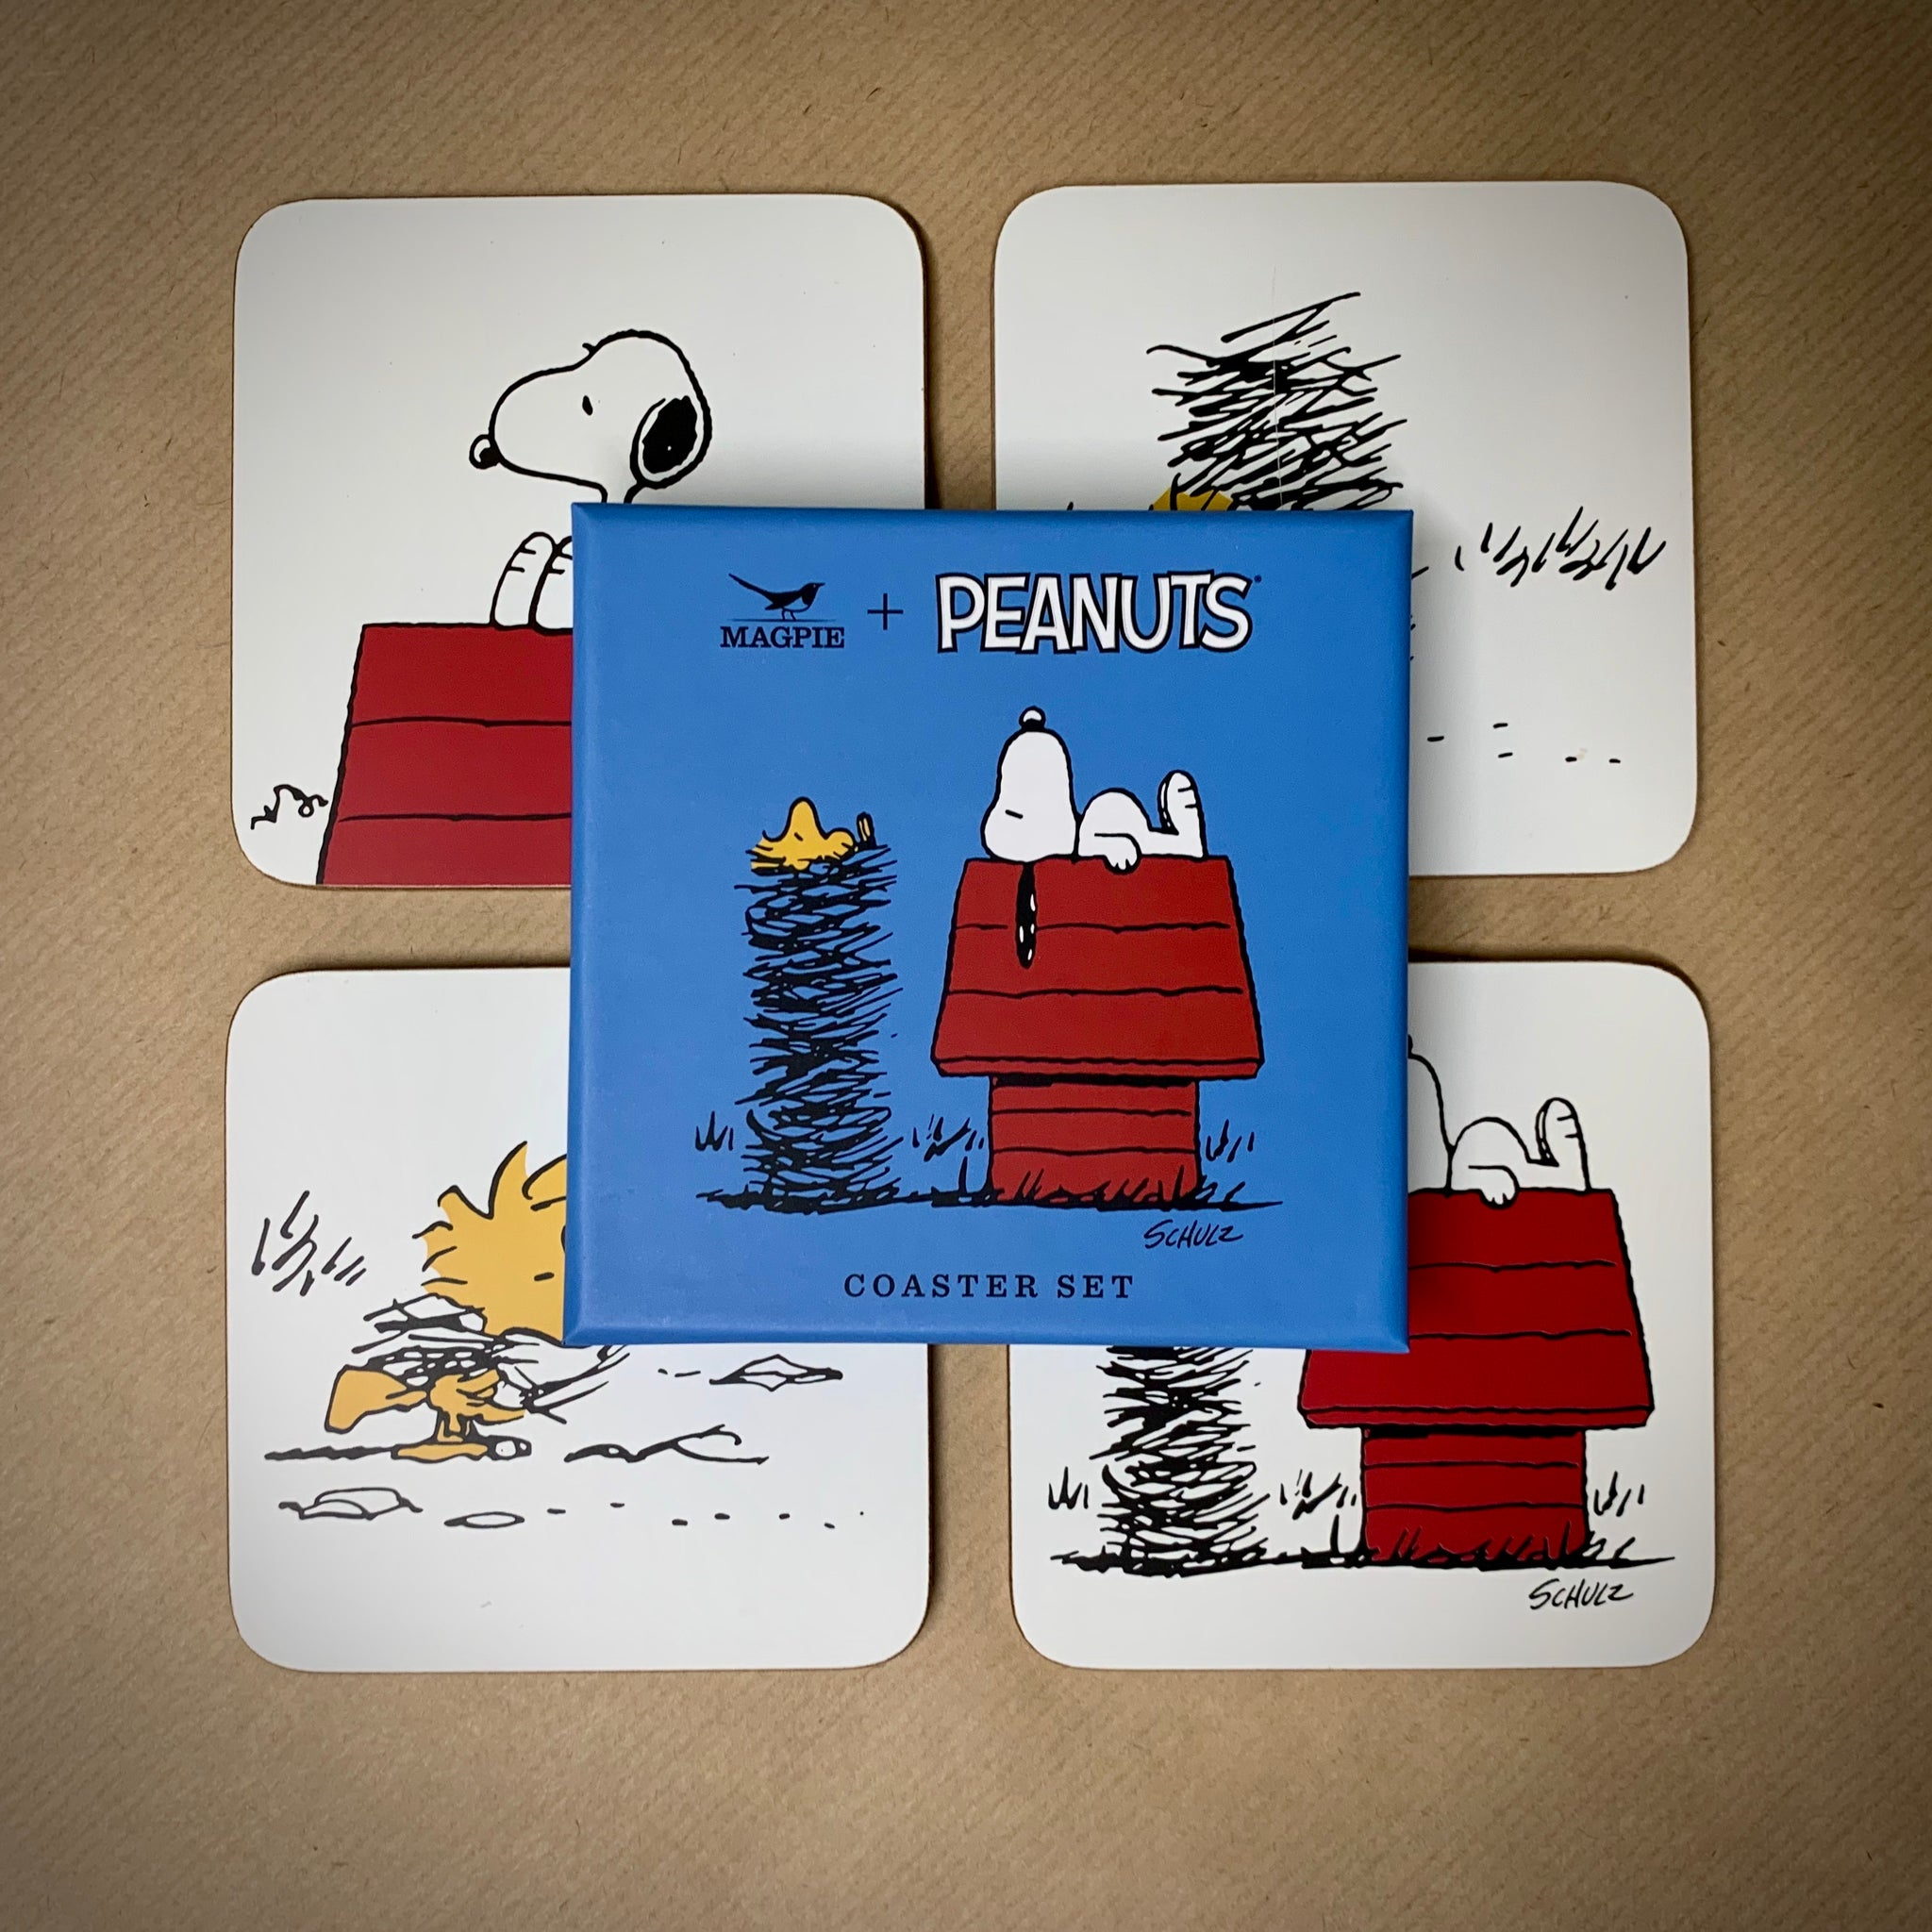 Peanuts (Snoopy) Set of 4 Coasters - mylesfromhome.co.uk